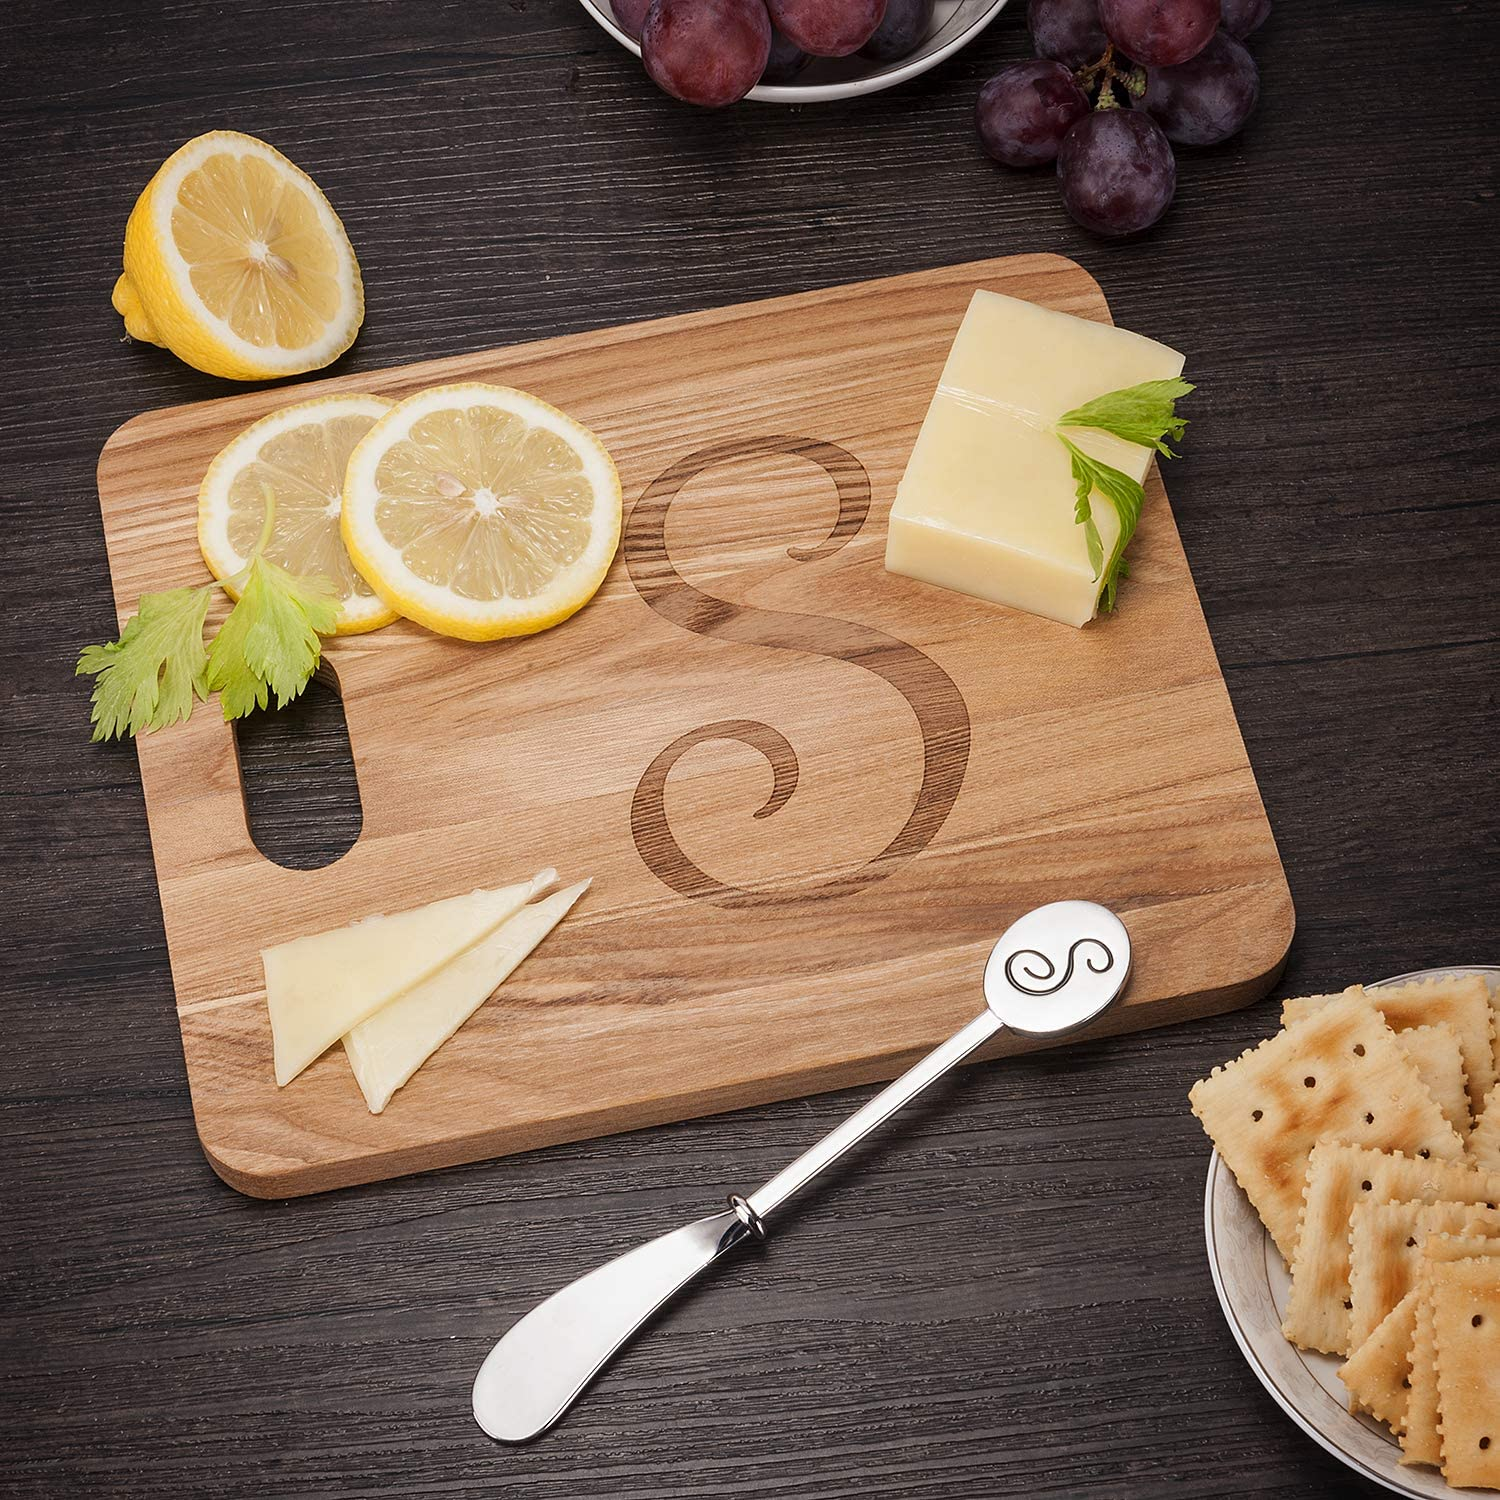 Monogram Fraxinus Mandshurica Solid Wood Cheese Board With Spreader-L